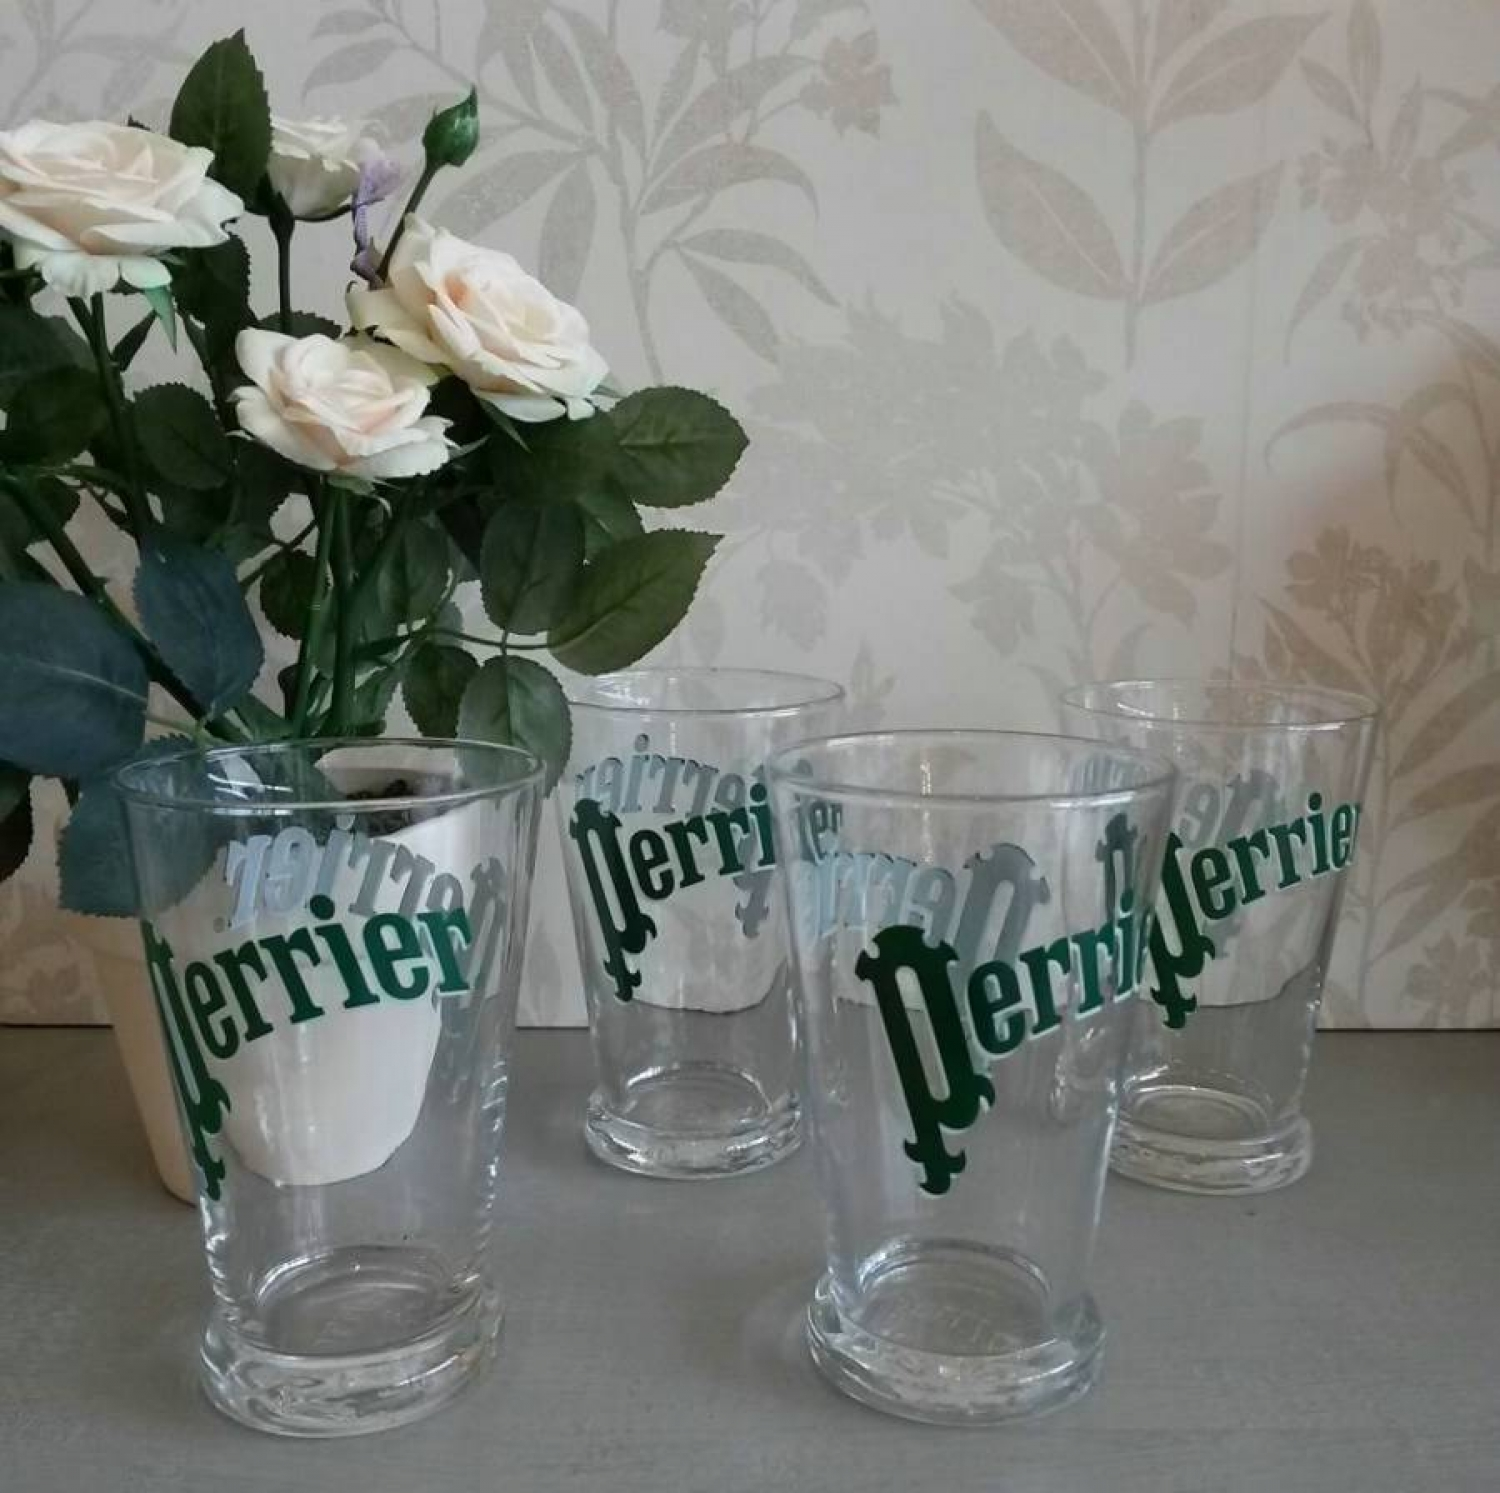 4 Vintage Perrier glasses